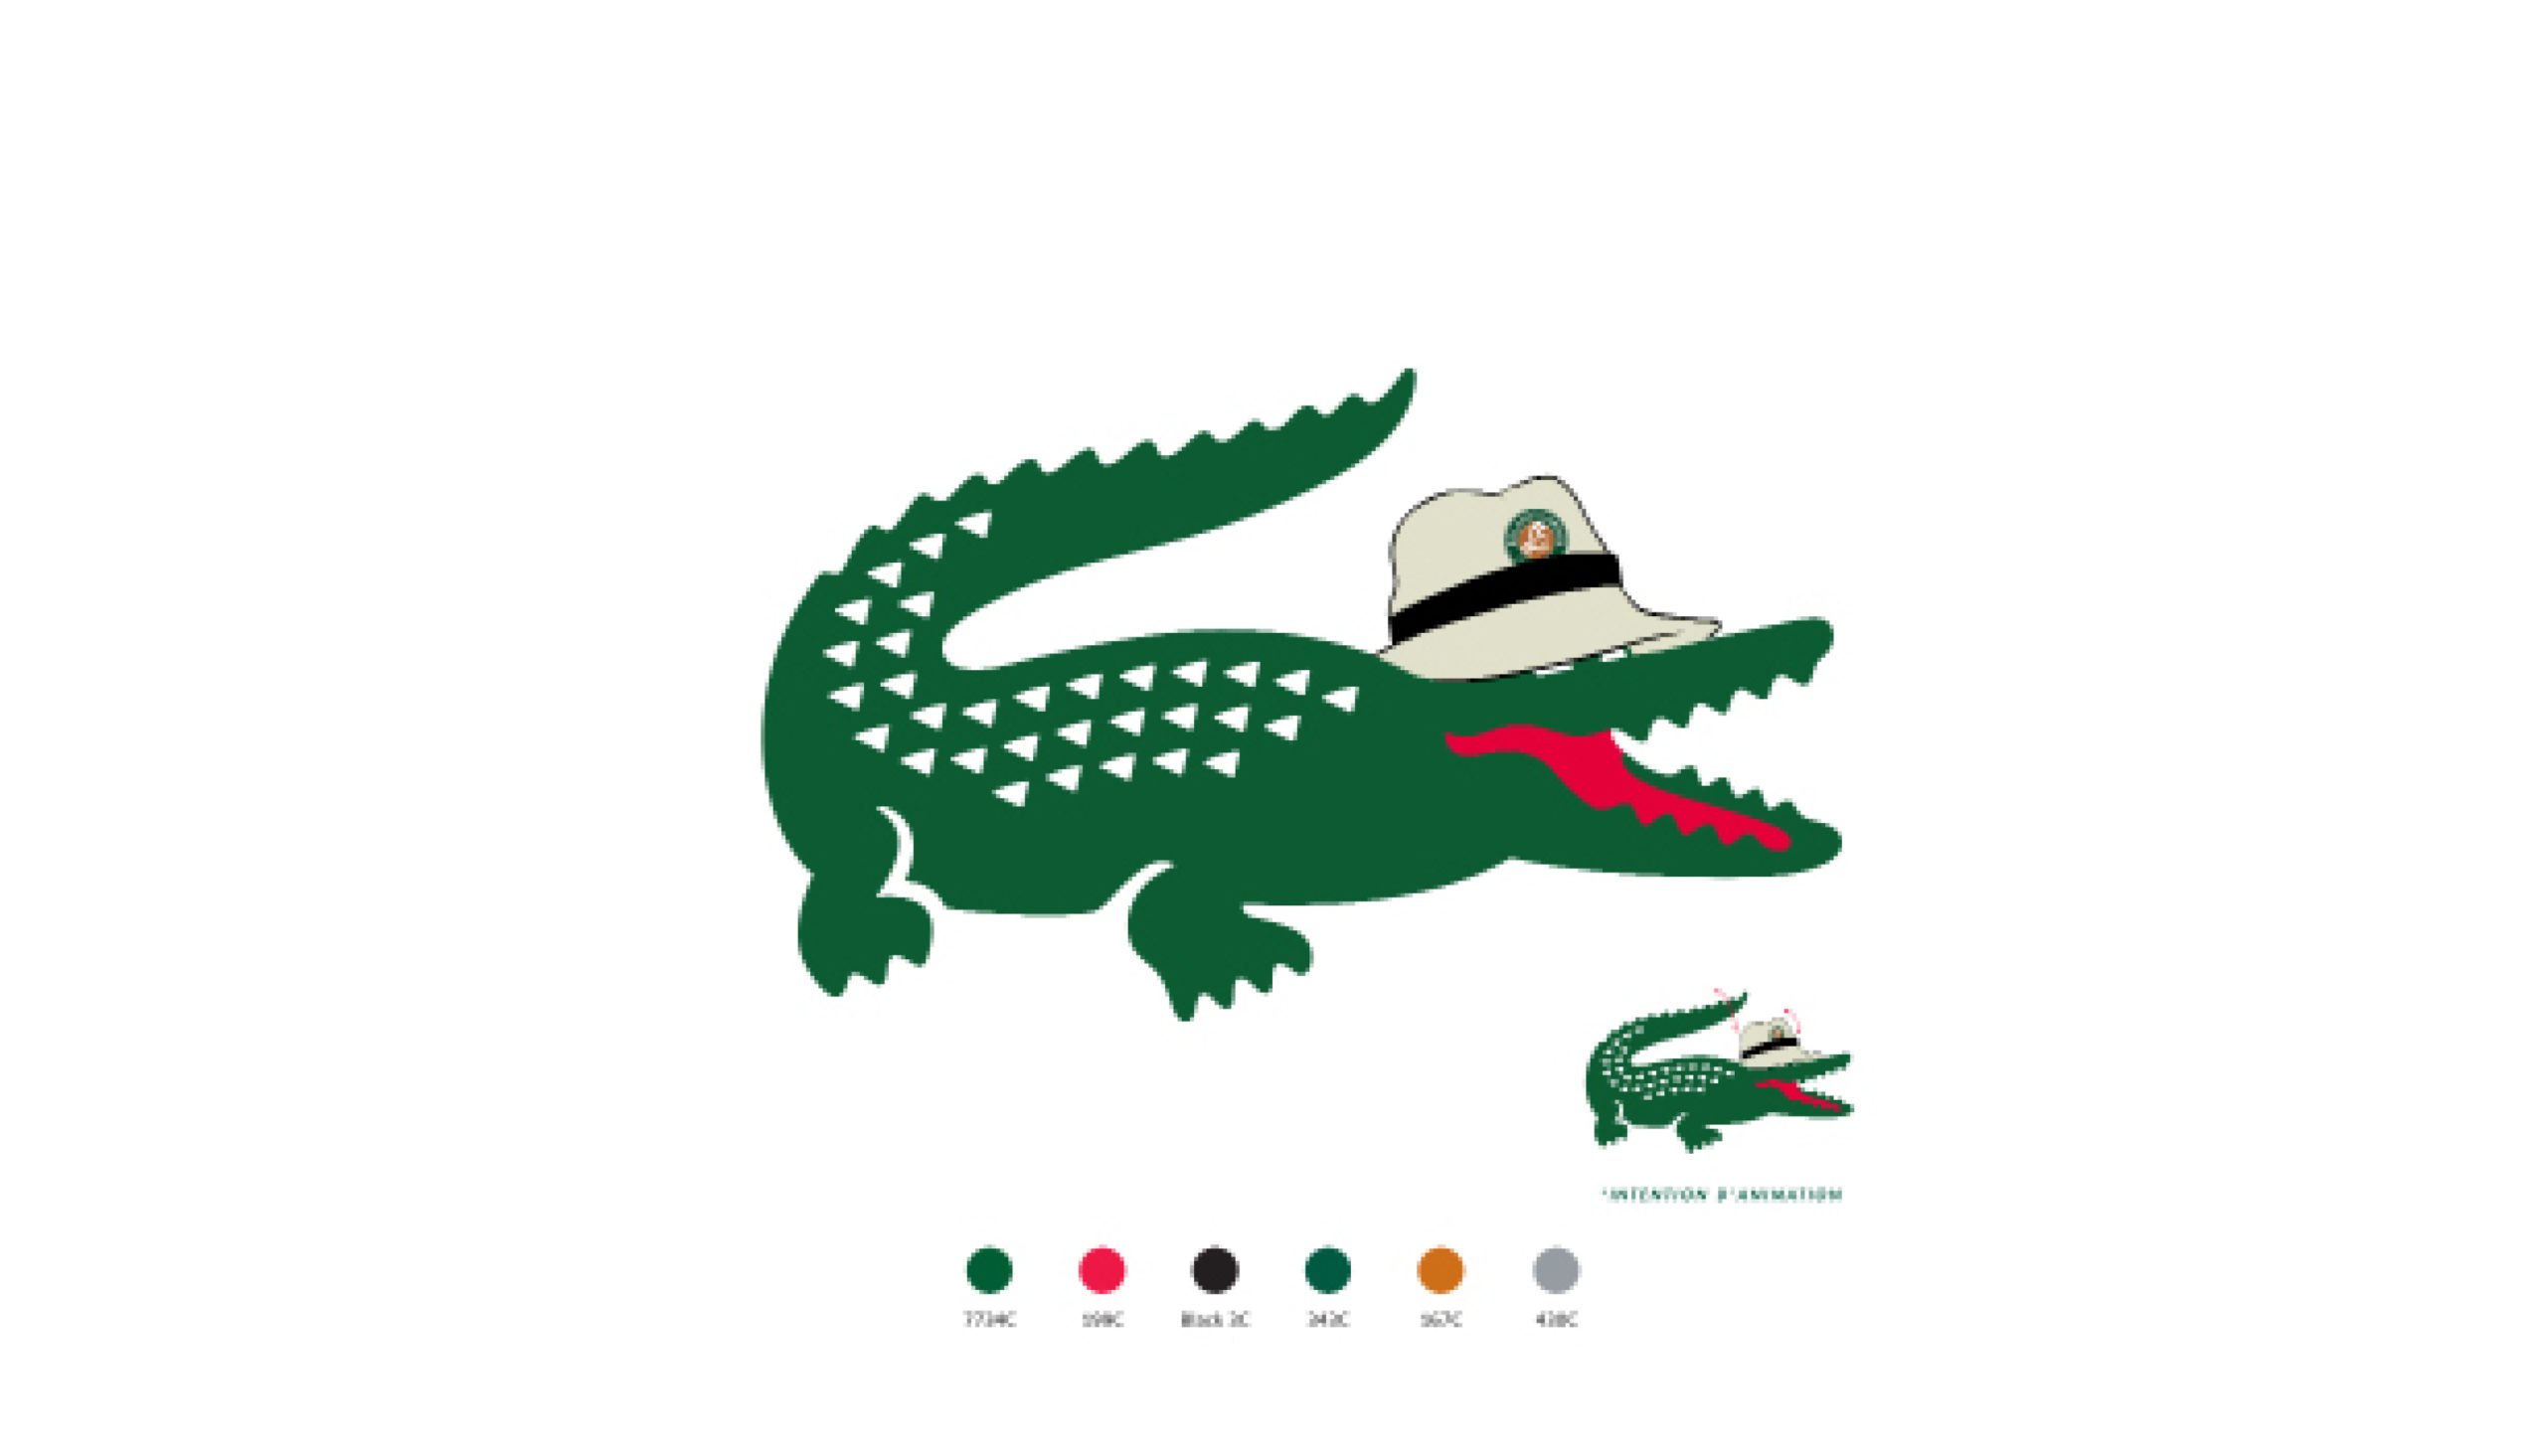 LACOSTE_STICKERS_HOBBYNOTE_R_046